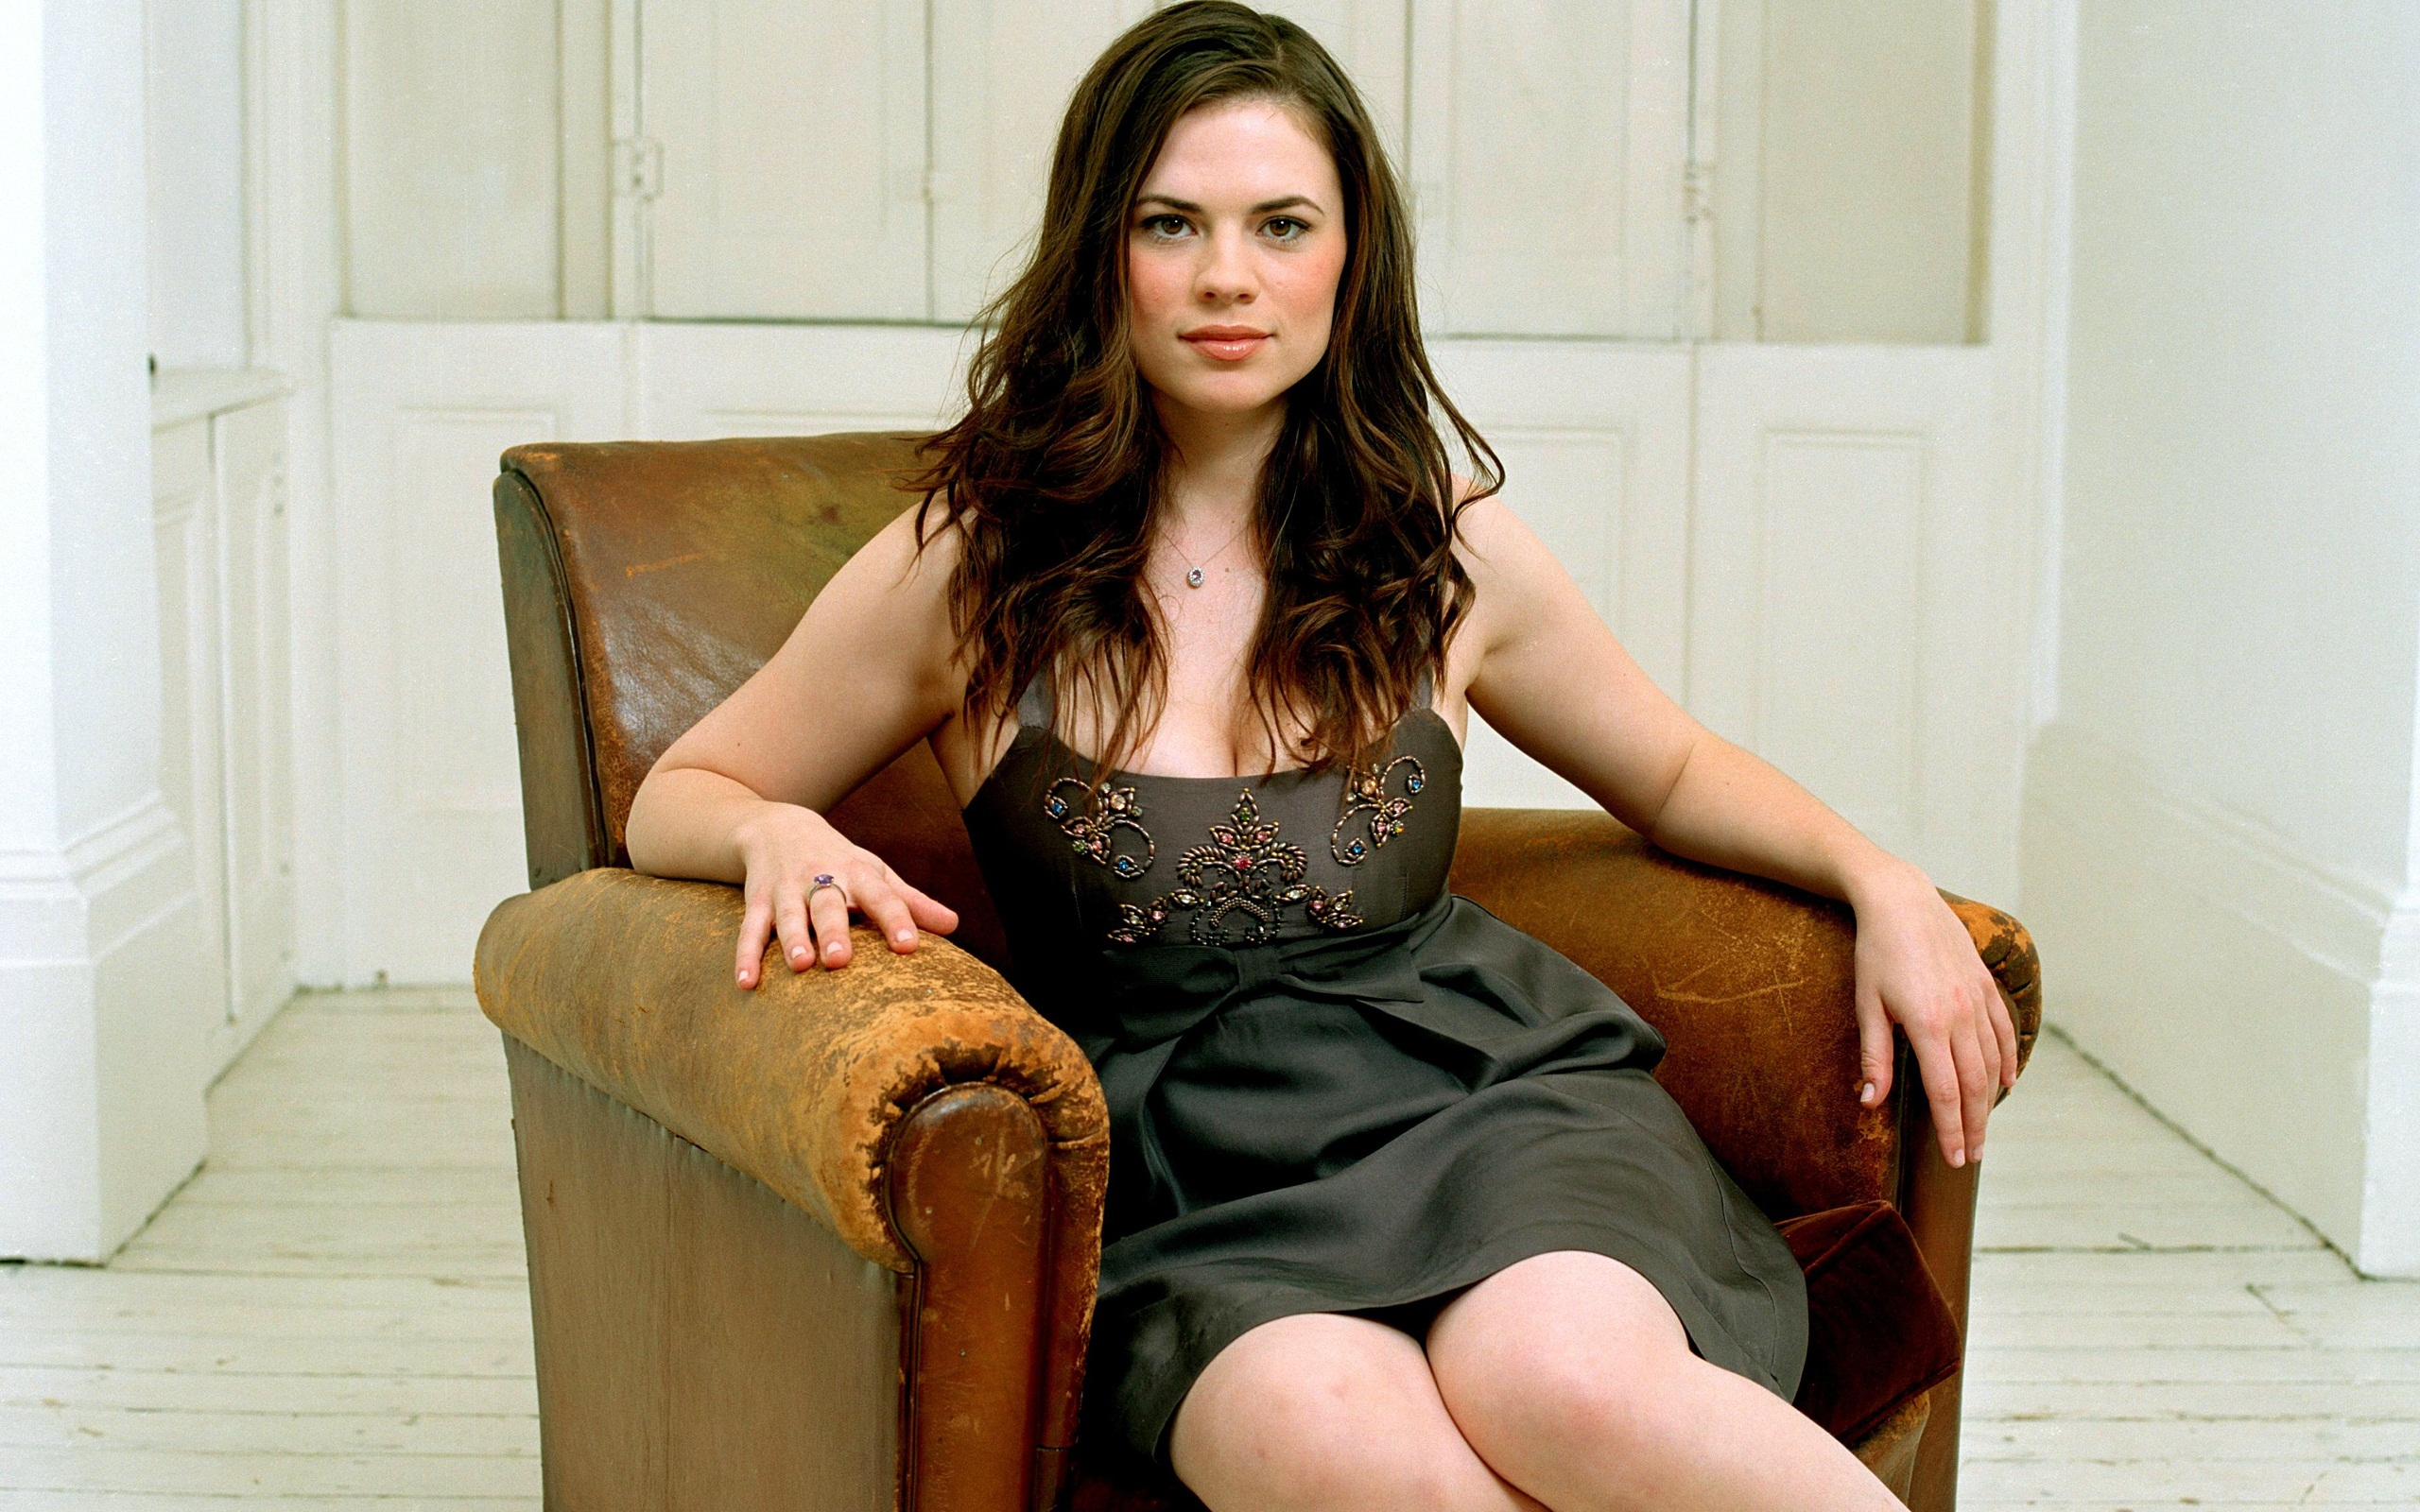 2560x1600 - Hayley Atwell Wallpapers 16